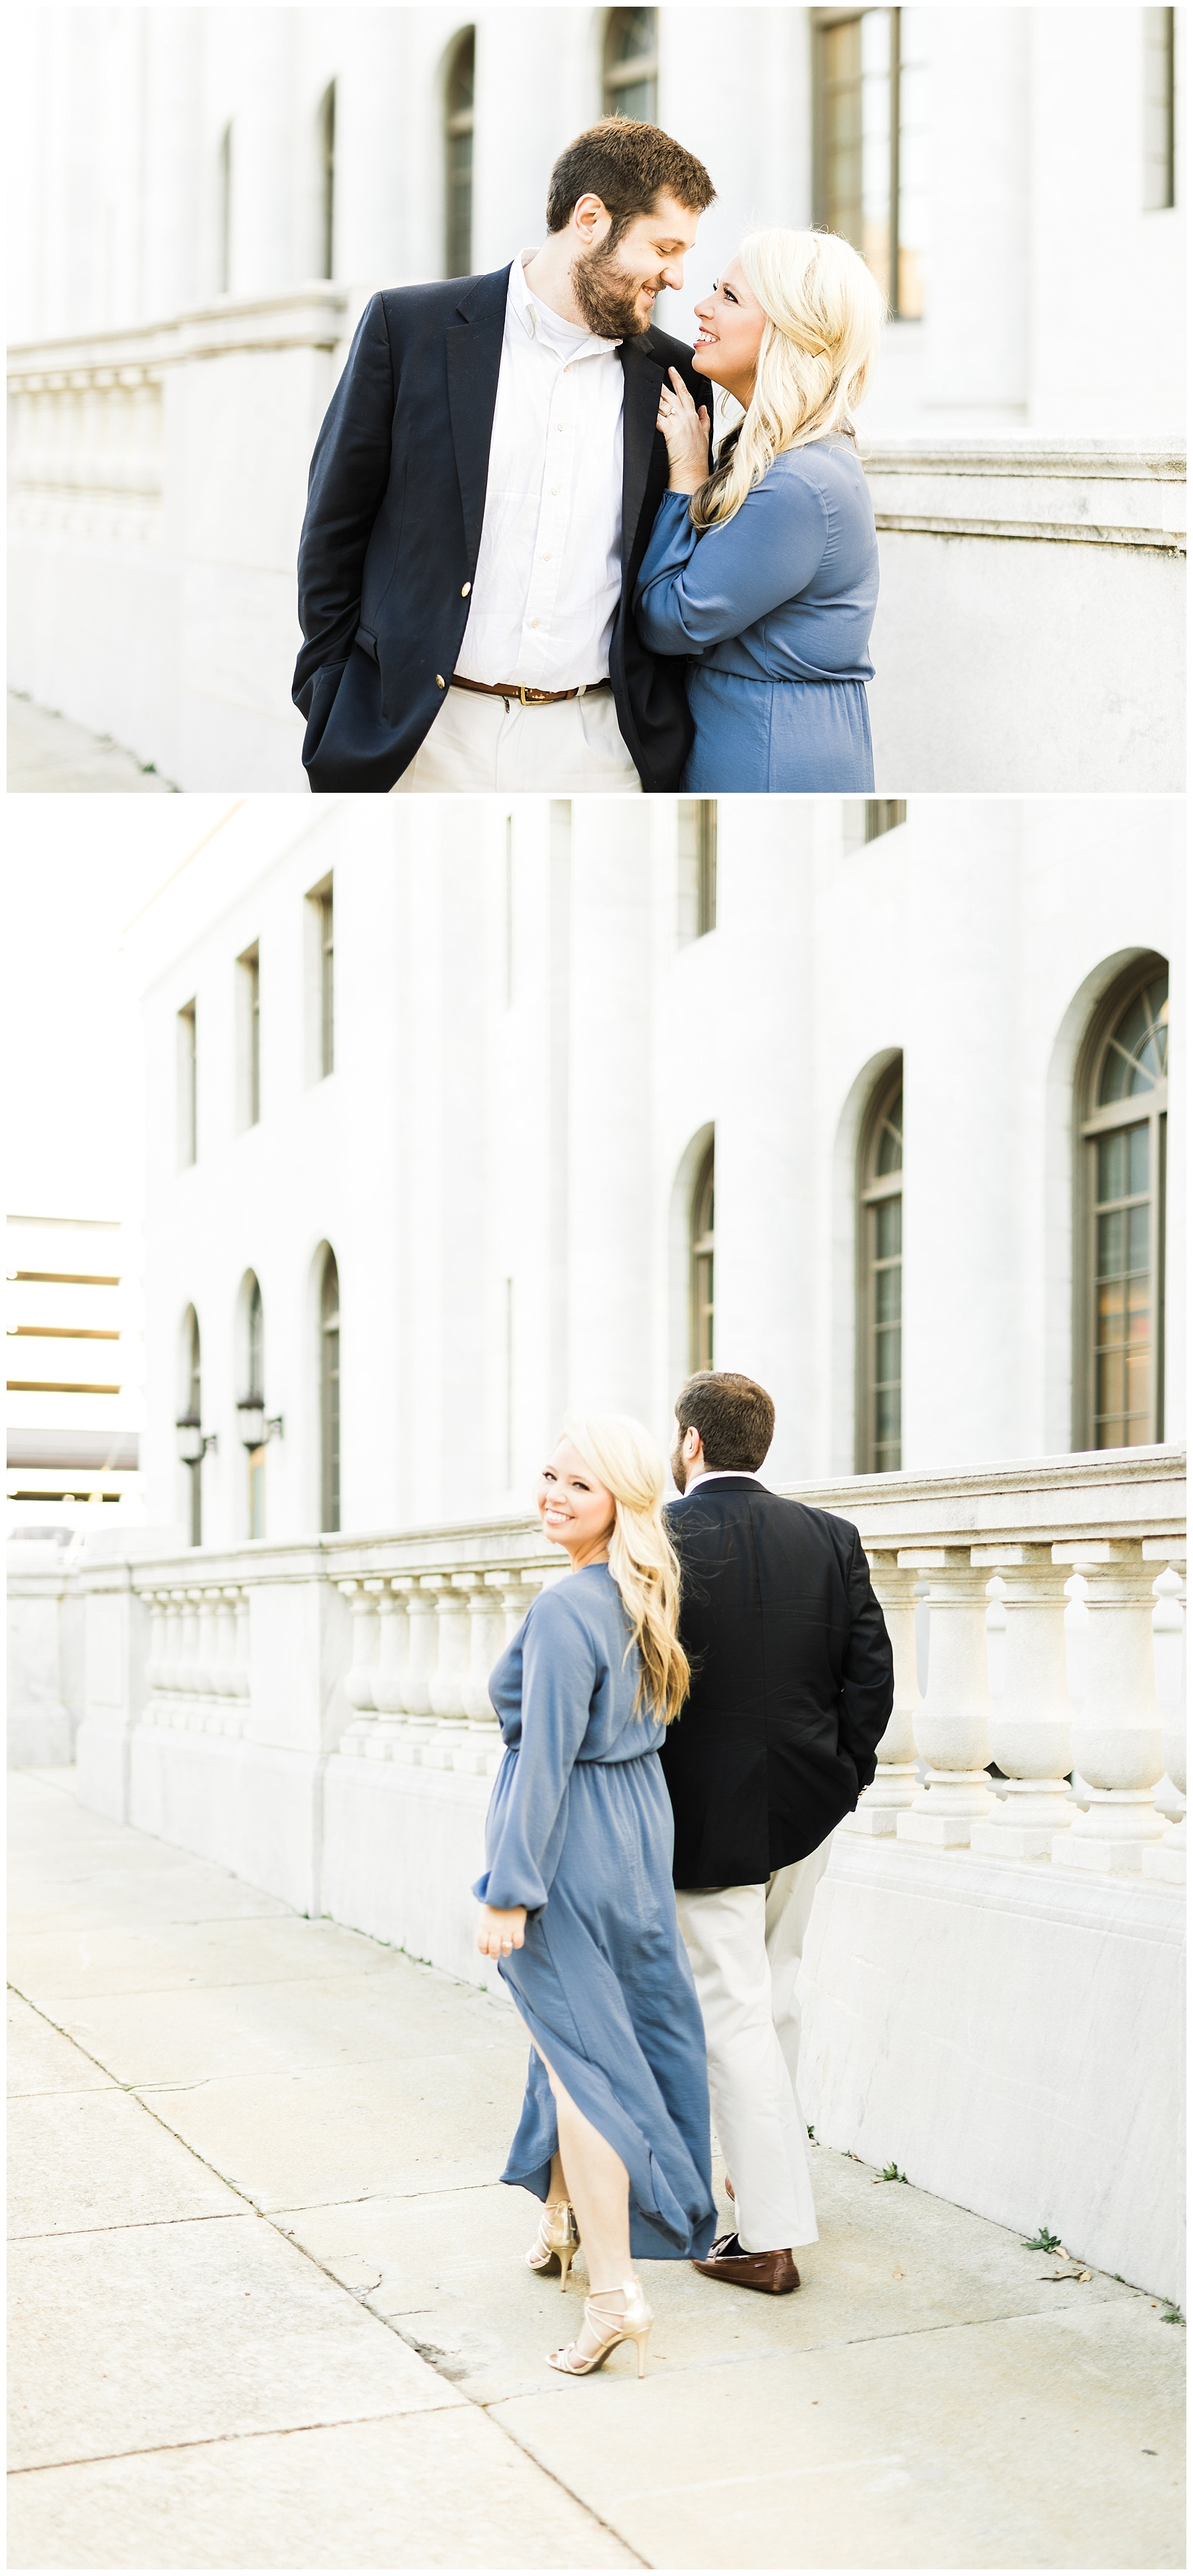 2018-02-13_0003 She Said Yes: Jessica Stalnaker Blog She Said Yes    invision_events, birmingham_al, auburn_al, alabama, atlanta_ga, atl, georgia, wedding_planner, wedding_designer, weddings, photography, wedding_planning